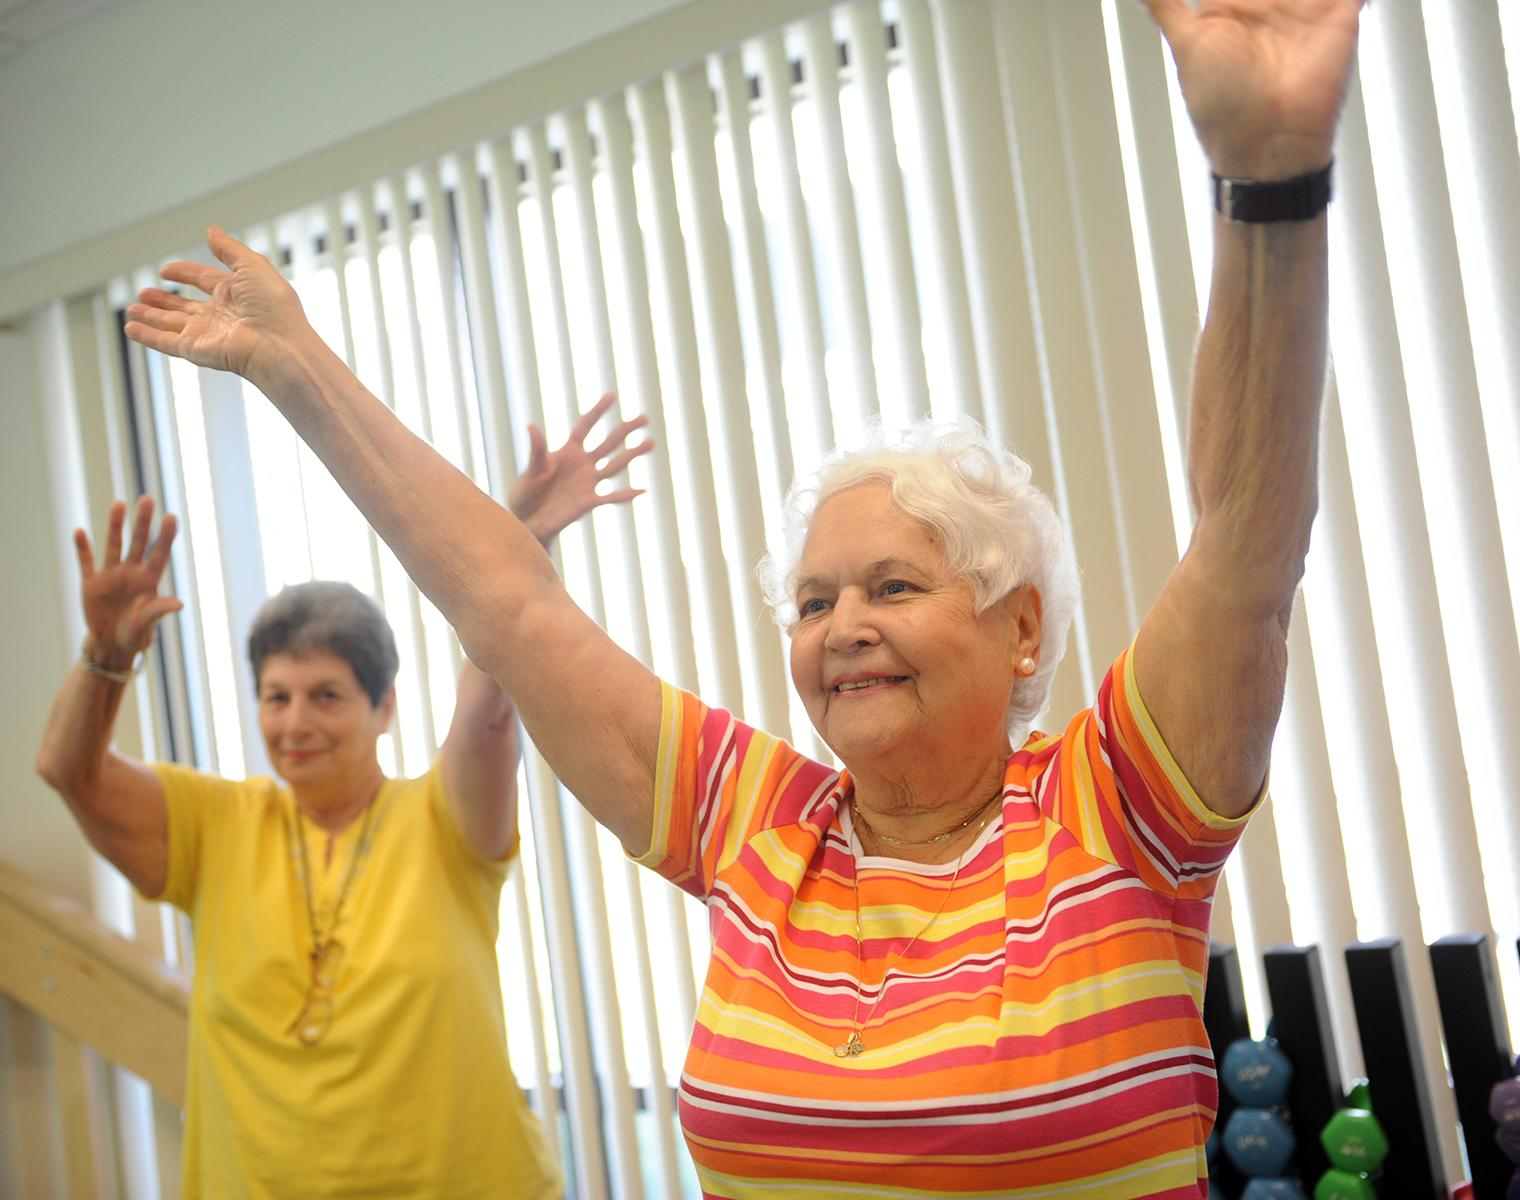 Two smiling older women, one in the background and one in the foreground, hold their arms in the air. Behind them is a wall of windows and a weight rack with dumbells.